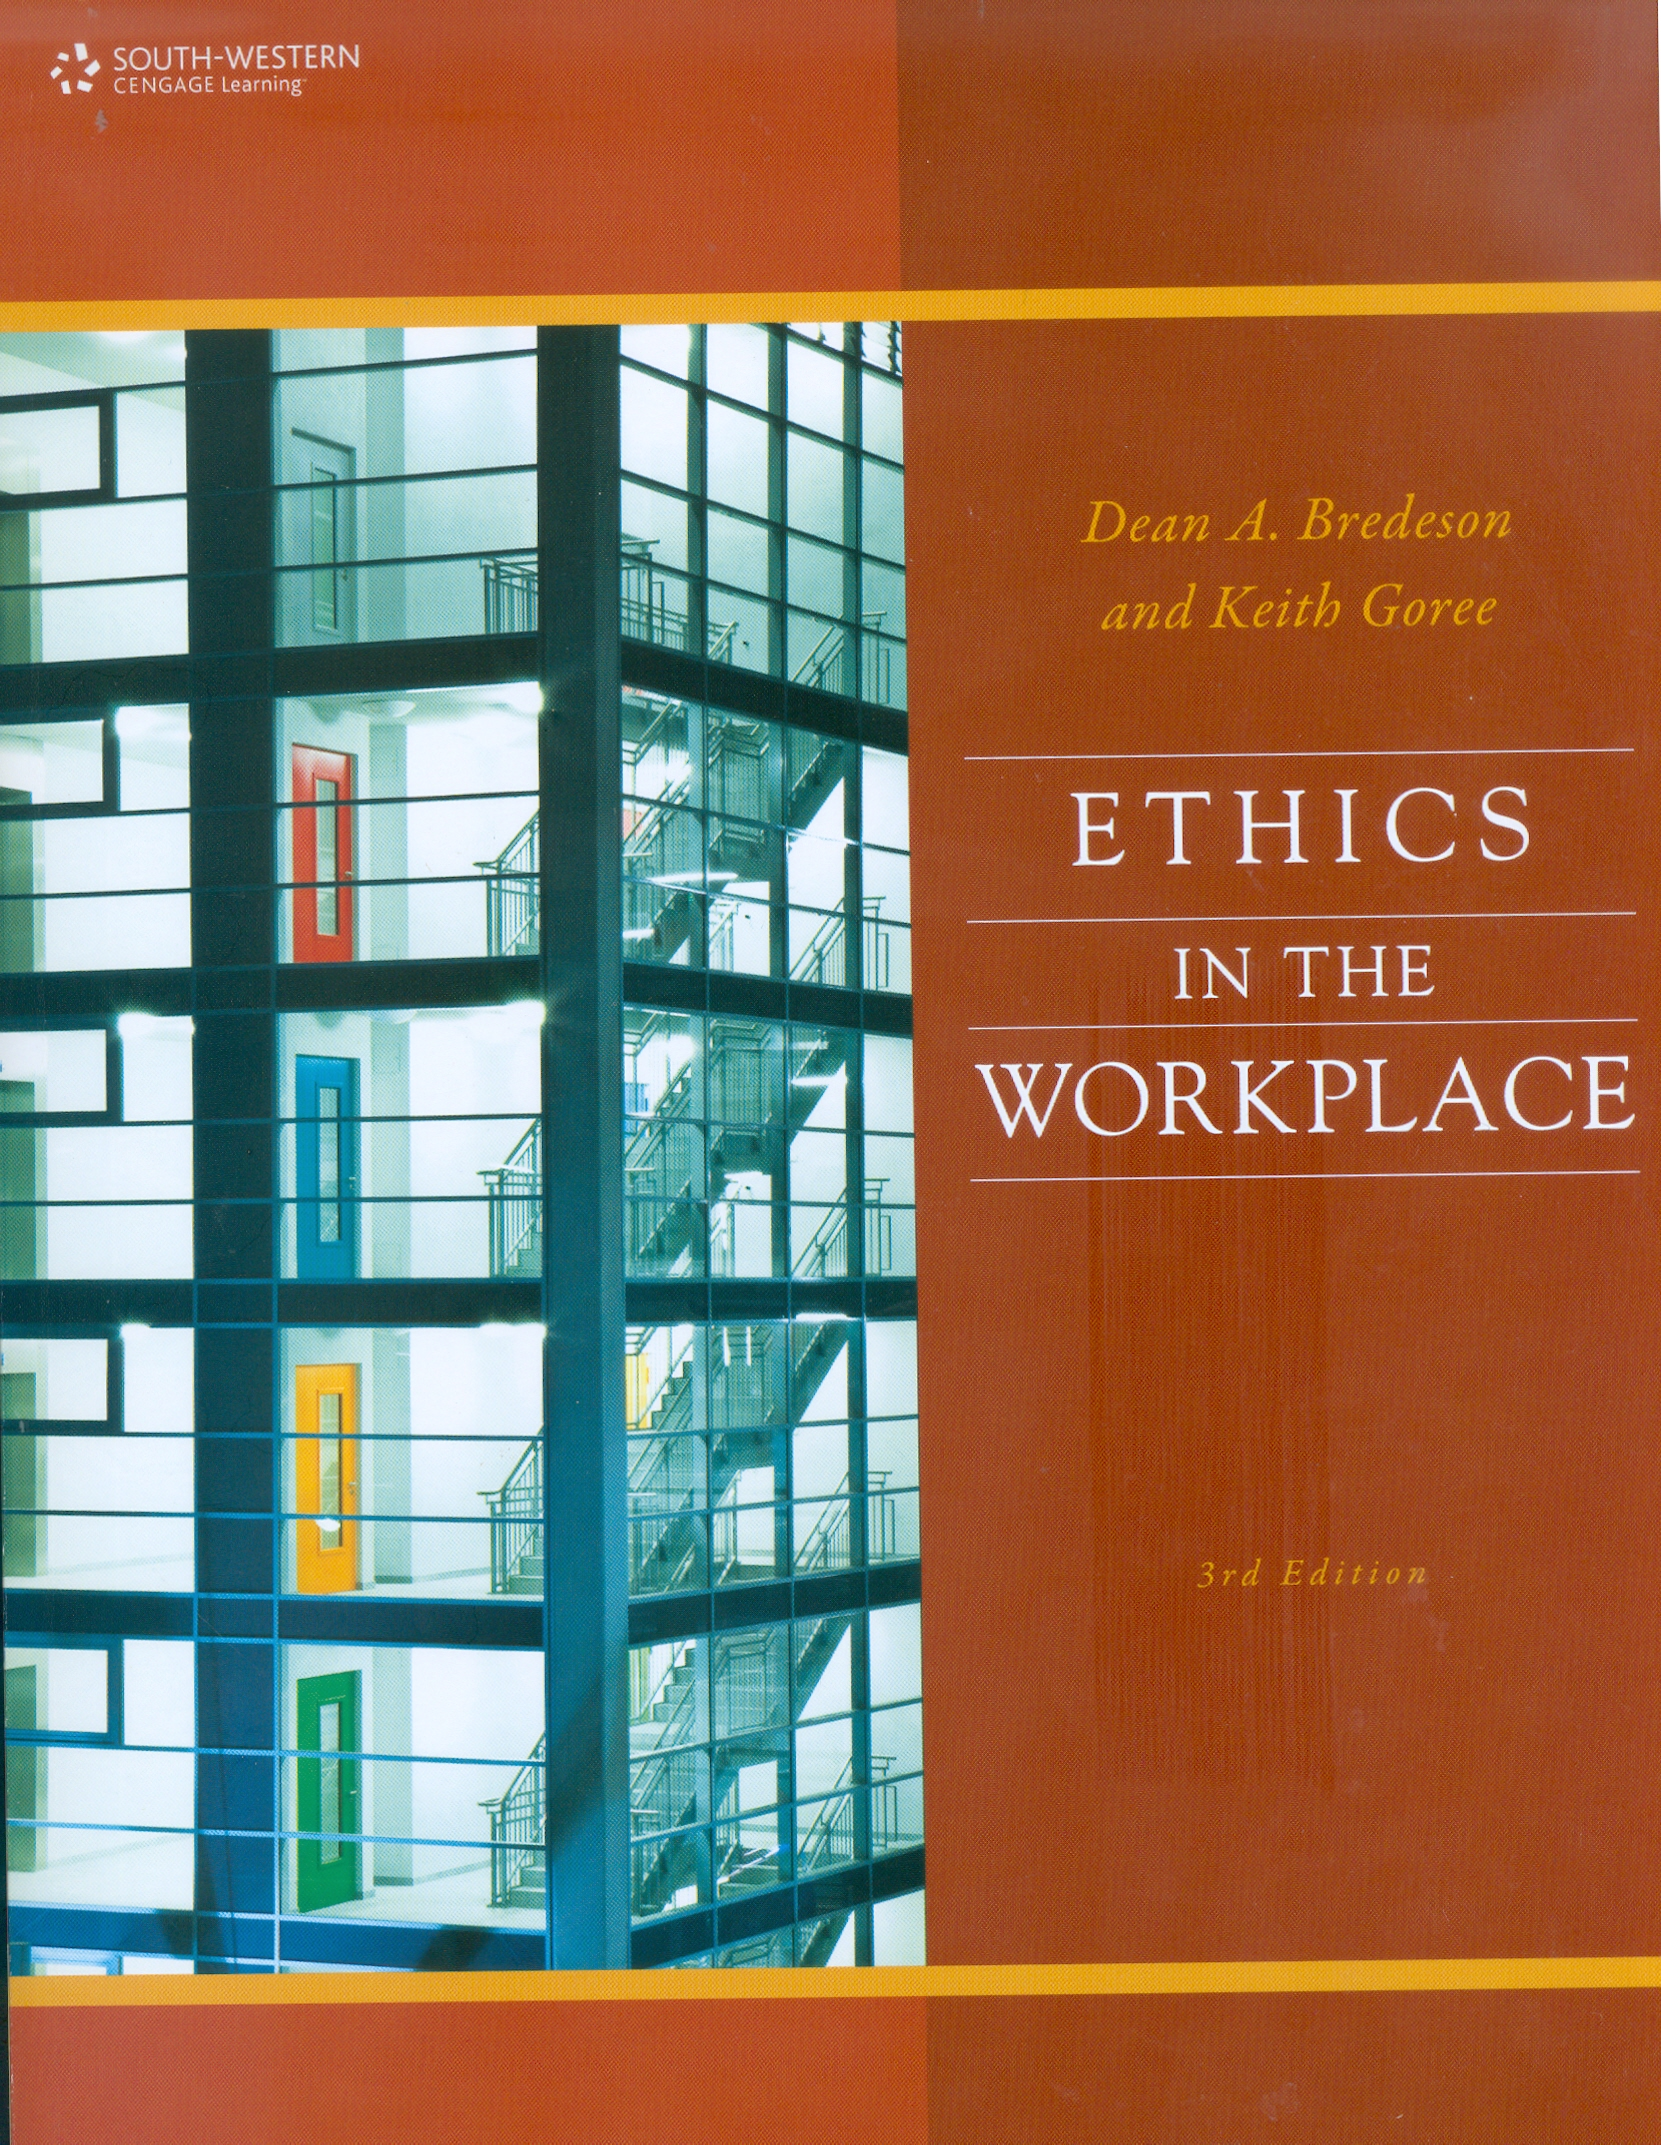 ethics in the workplace0001.jpg